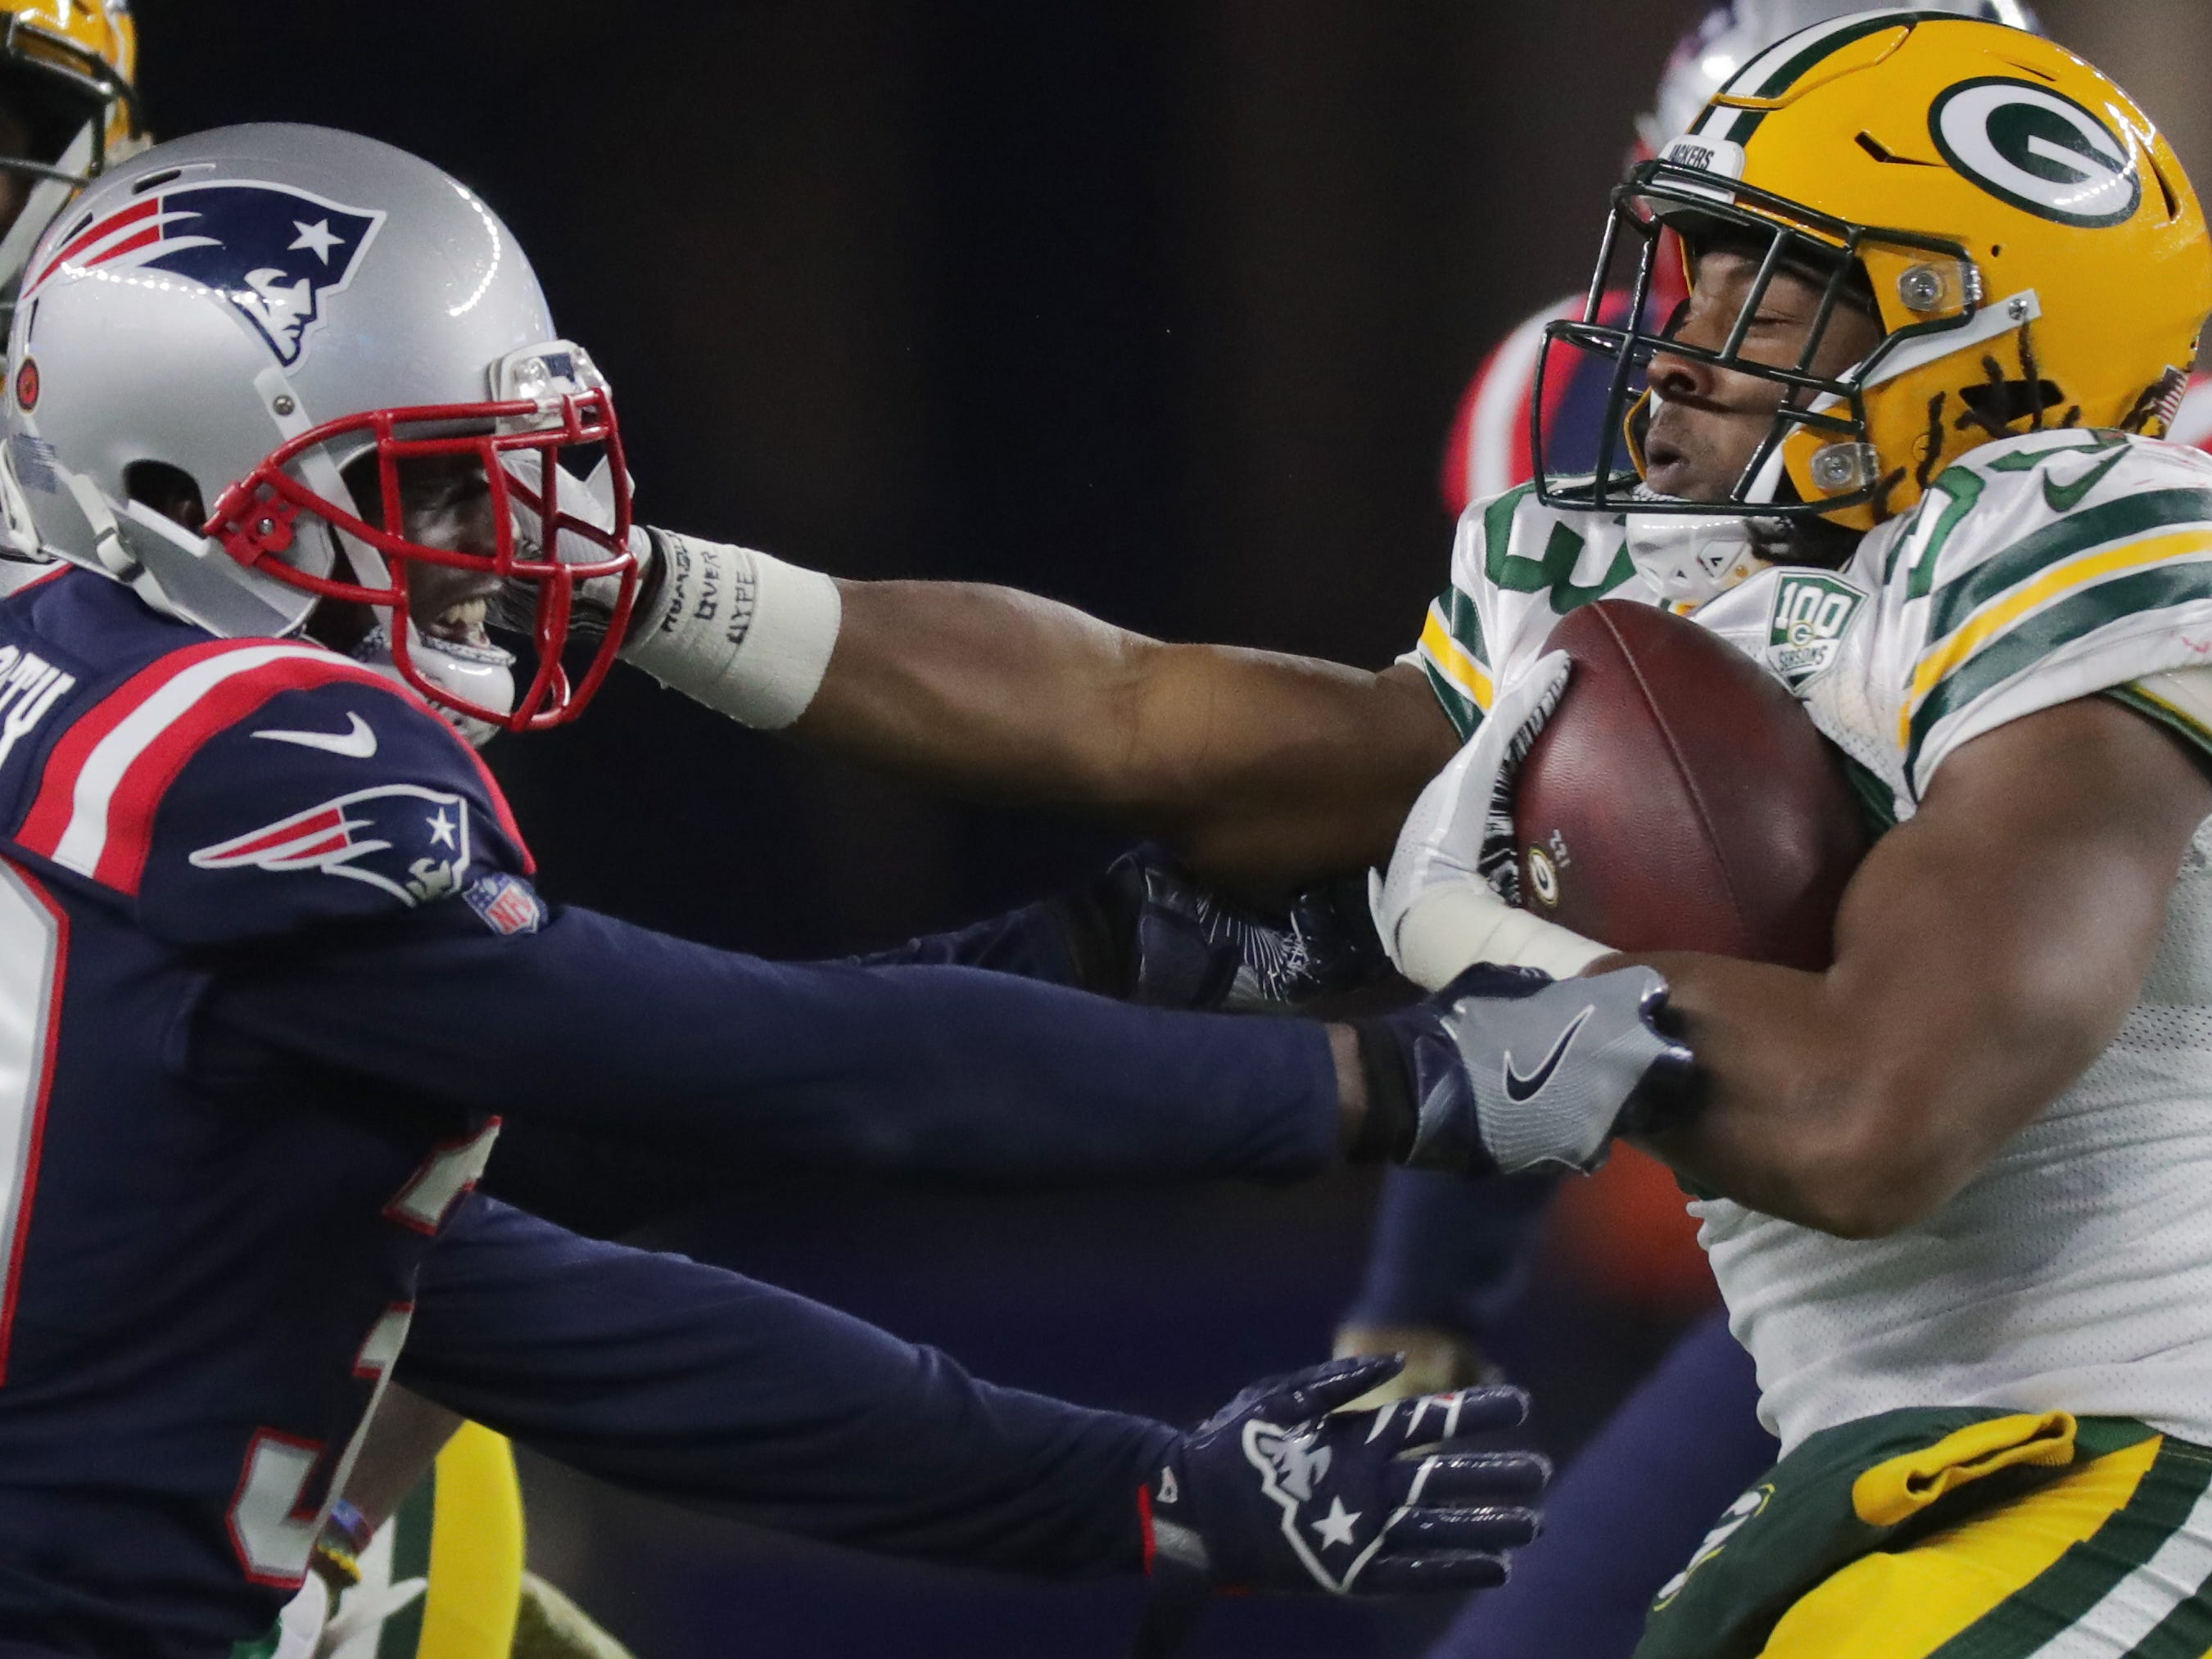 Green Bay Packers running back Aaron Jones (33) is tackled by New England Patriots cornerback Jason McCourty (30) after a short gain during the second quarter of their game Sunday, November 4, 2018 at Gillette Stadium in Foxborough, Mass.